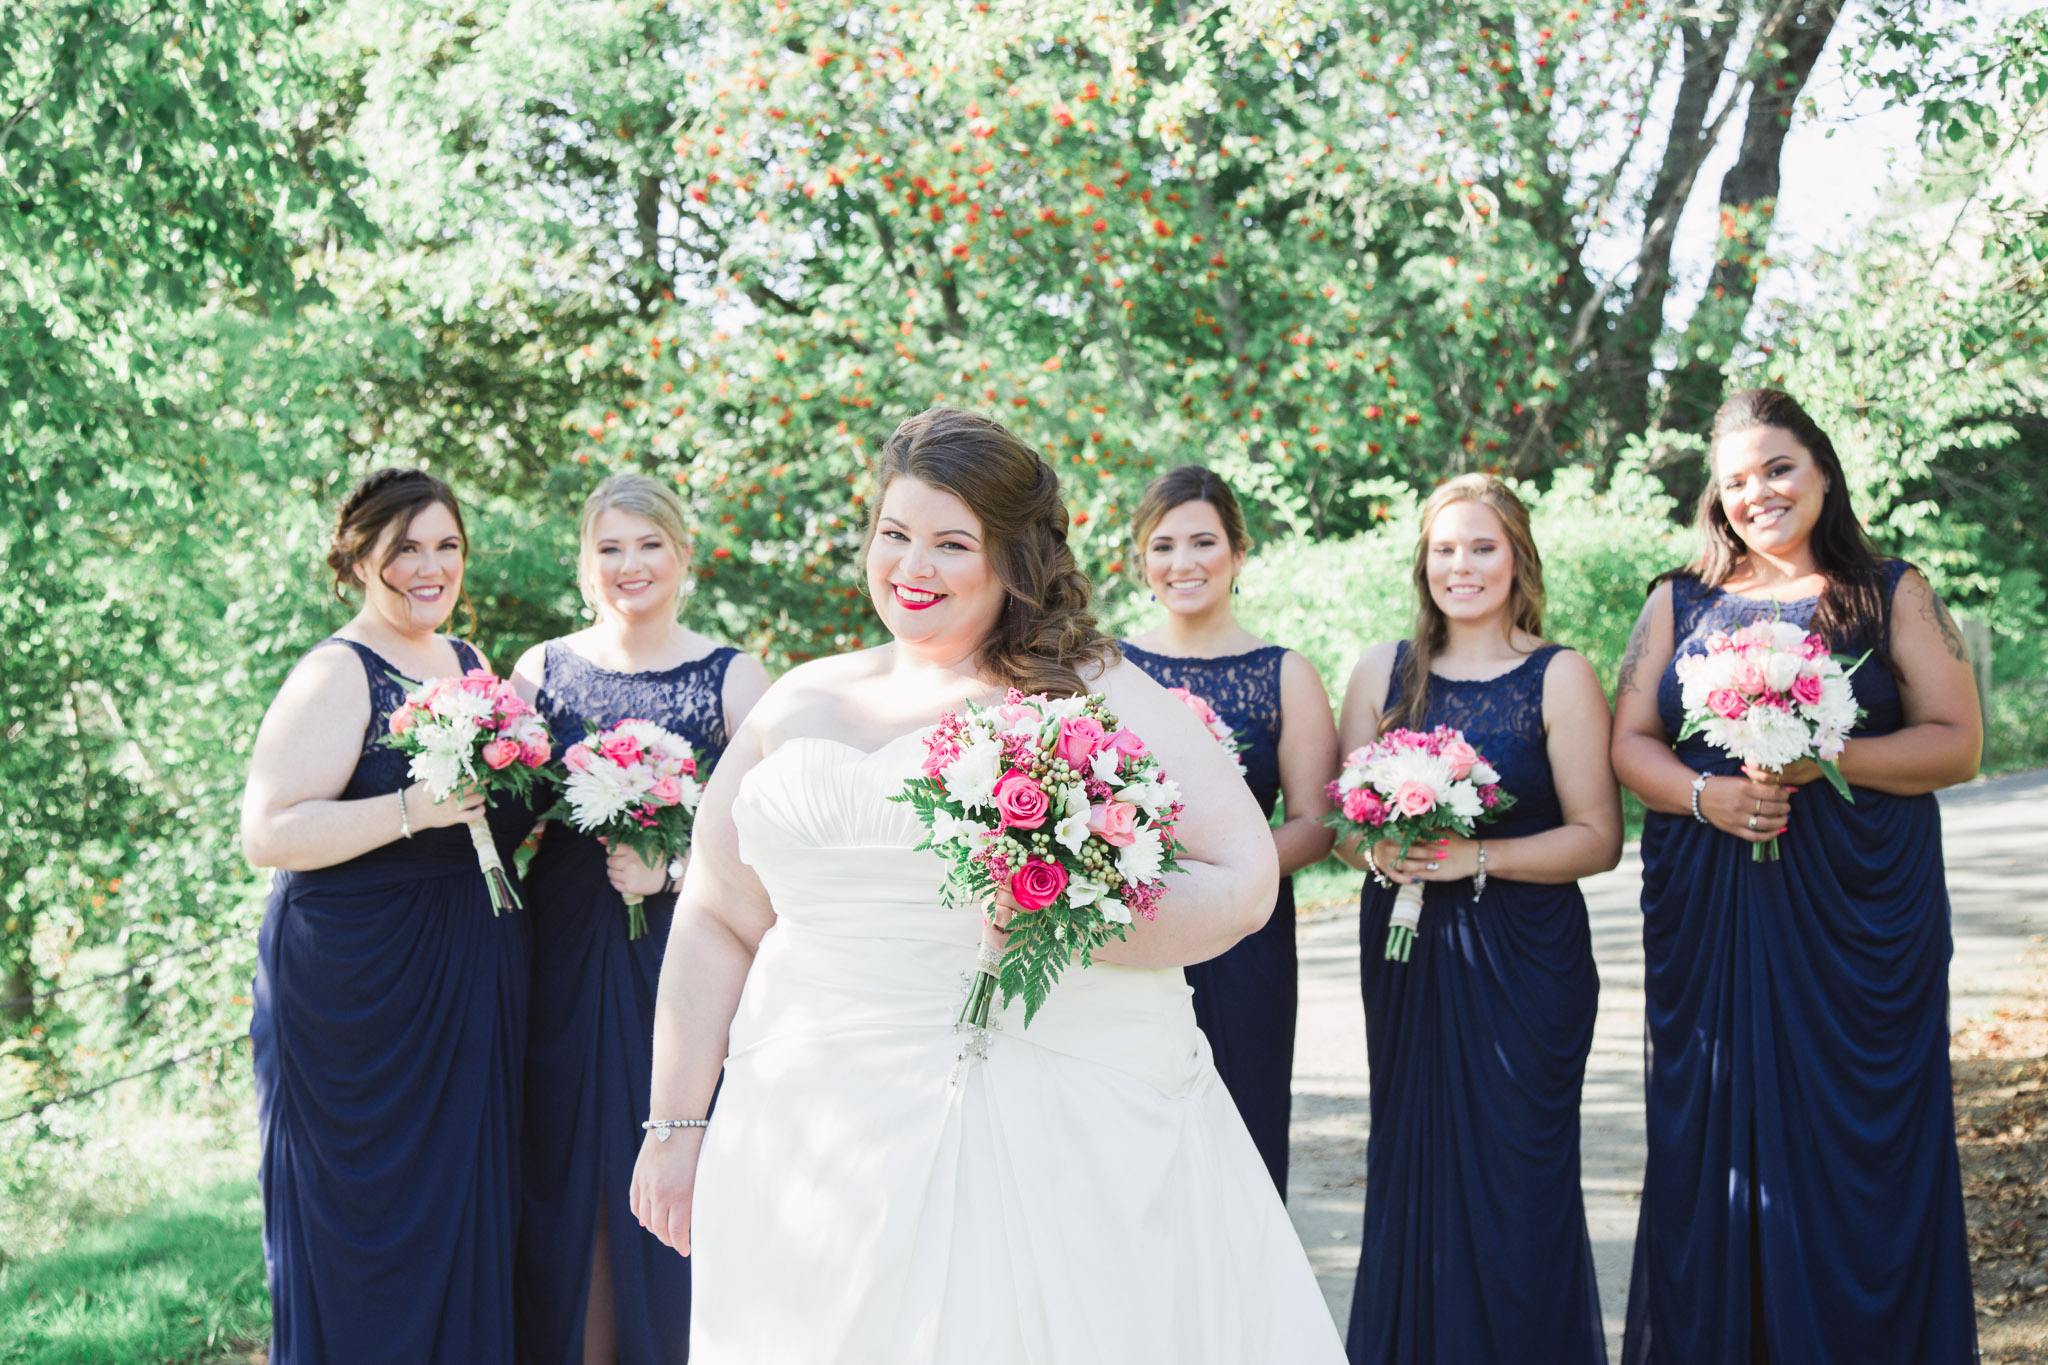 Image of bride posing with her bridesmaids at the background